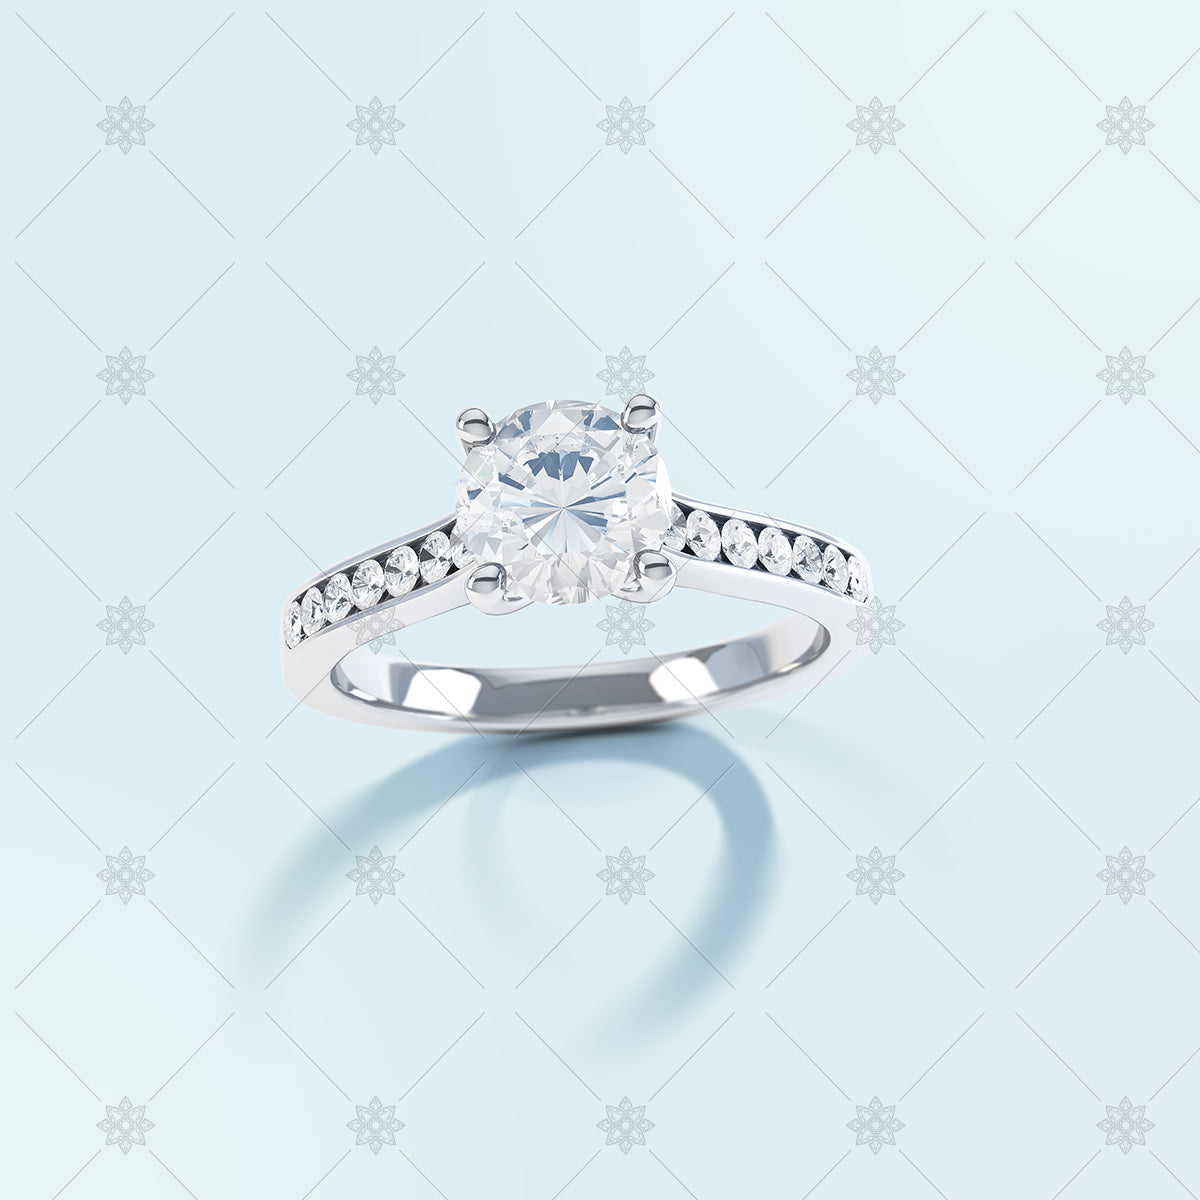 Round semi set diamond ring with long shadow on blue background.